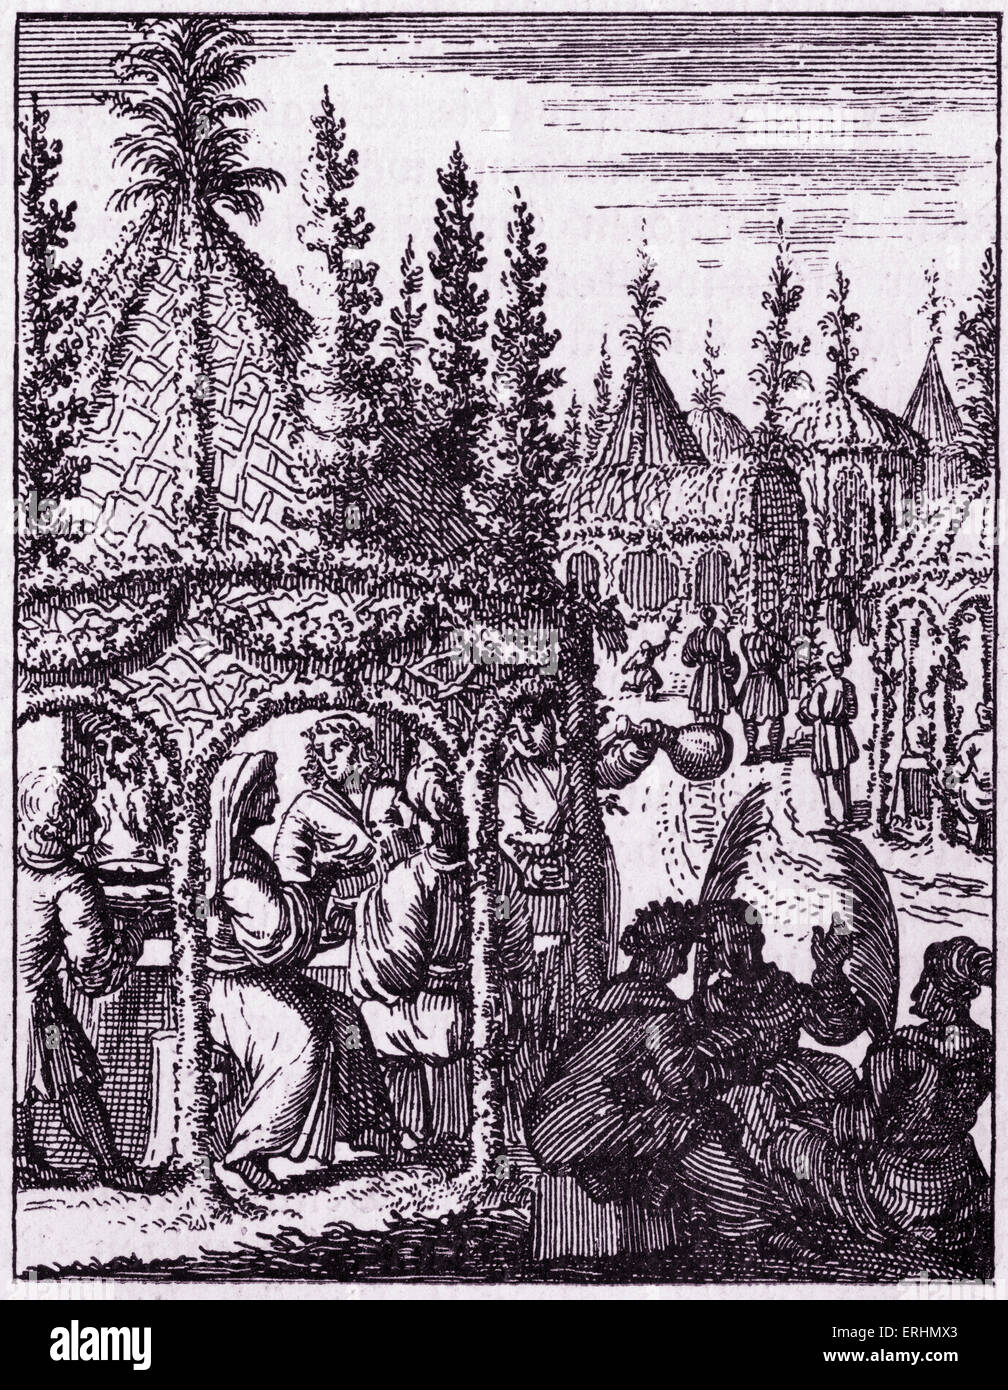 Festive meal in a sukka (temporary shelter) for the festival of Sukkot From book published in Utrecht, 1657 - Stock Image